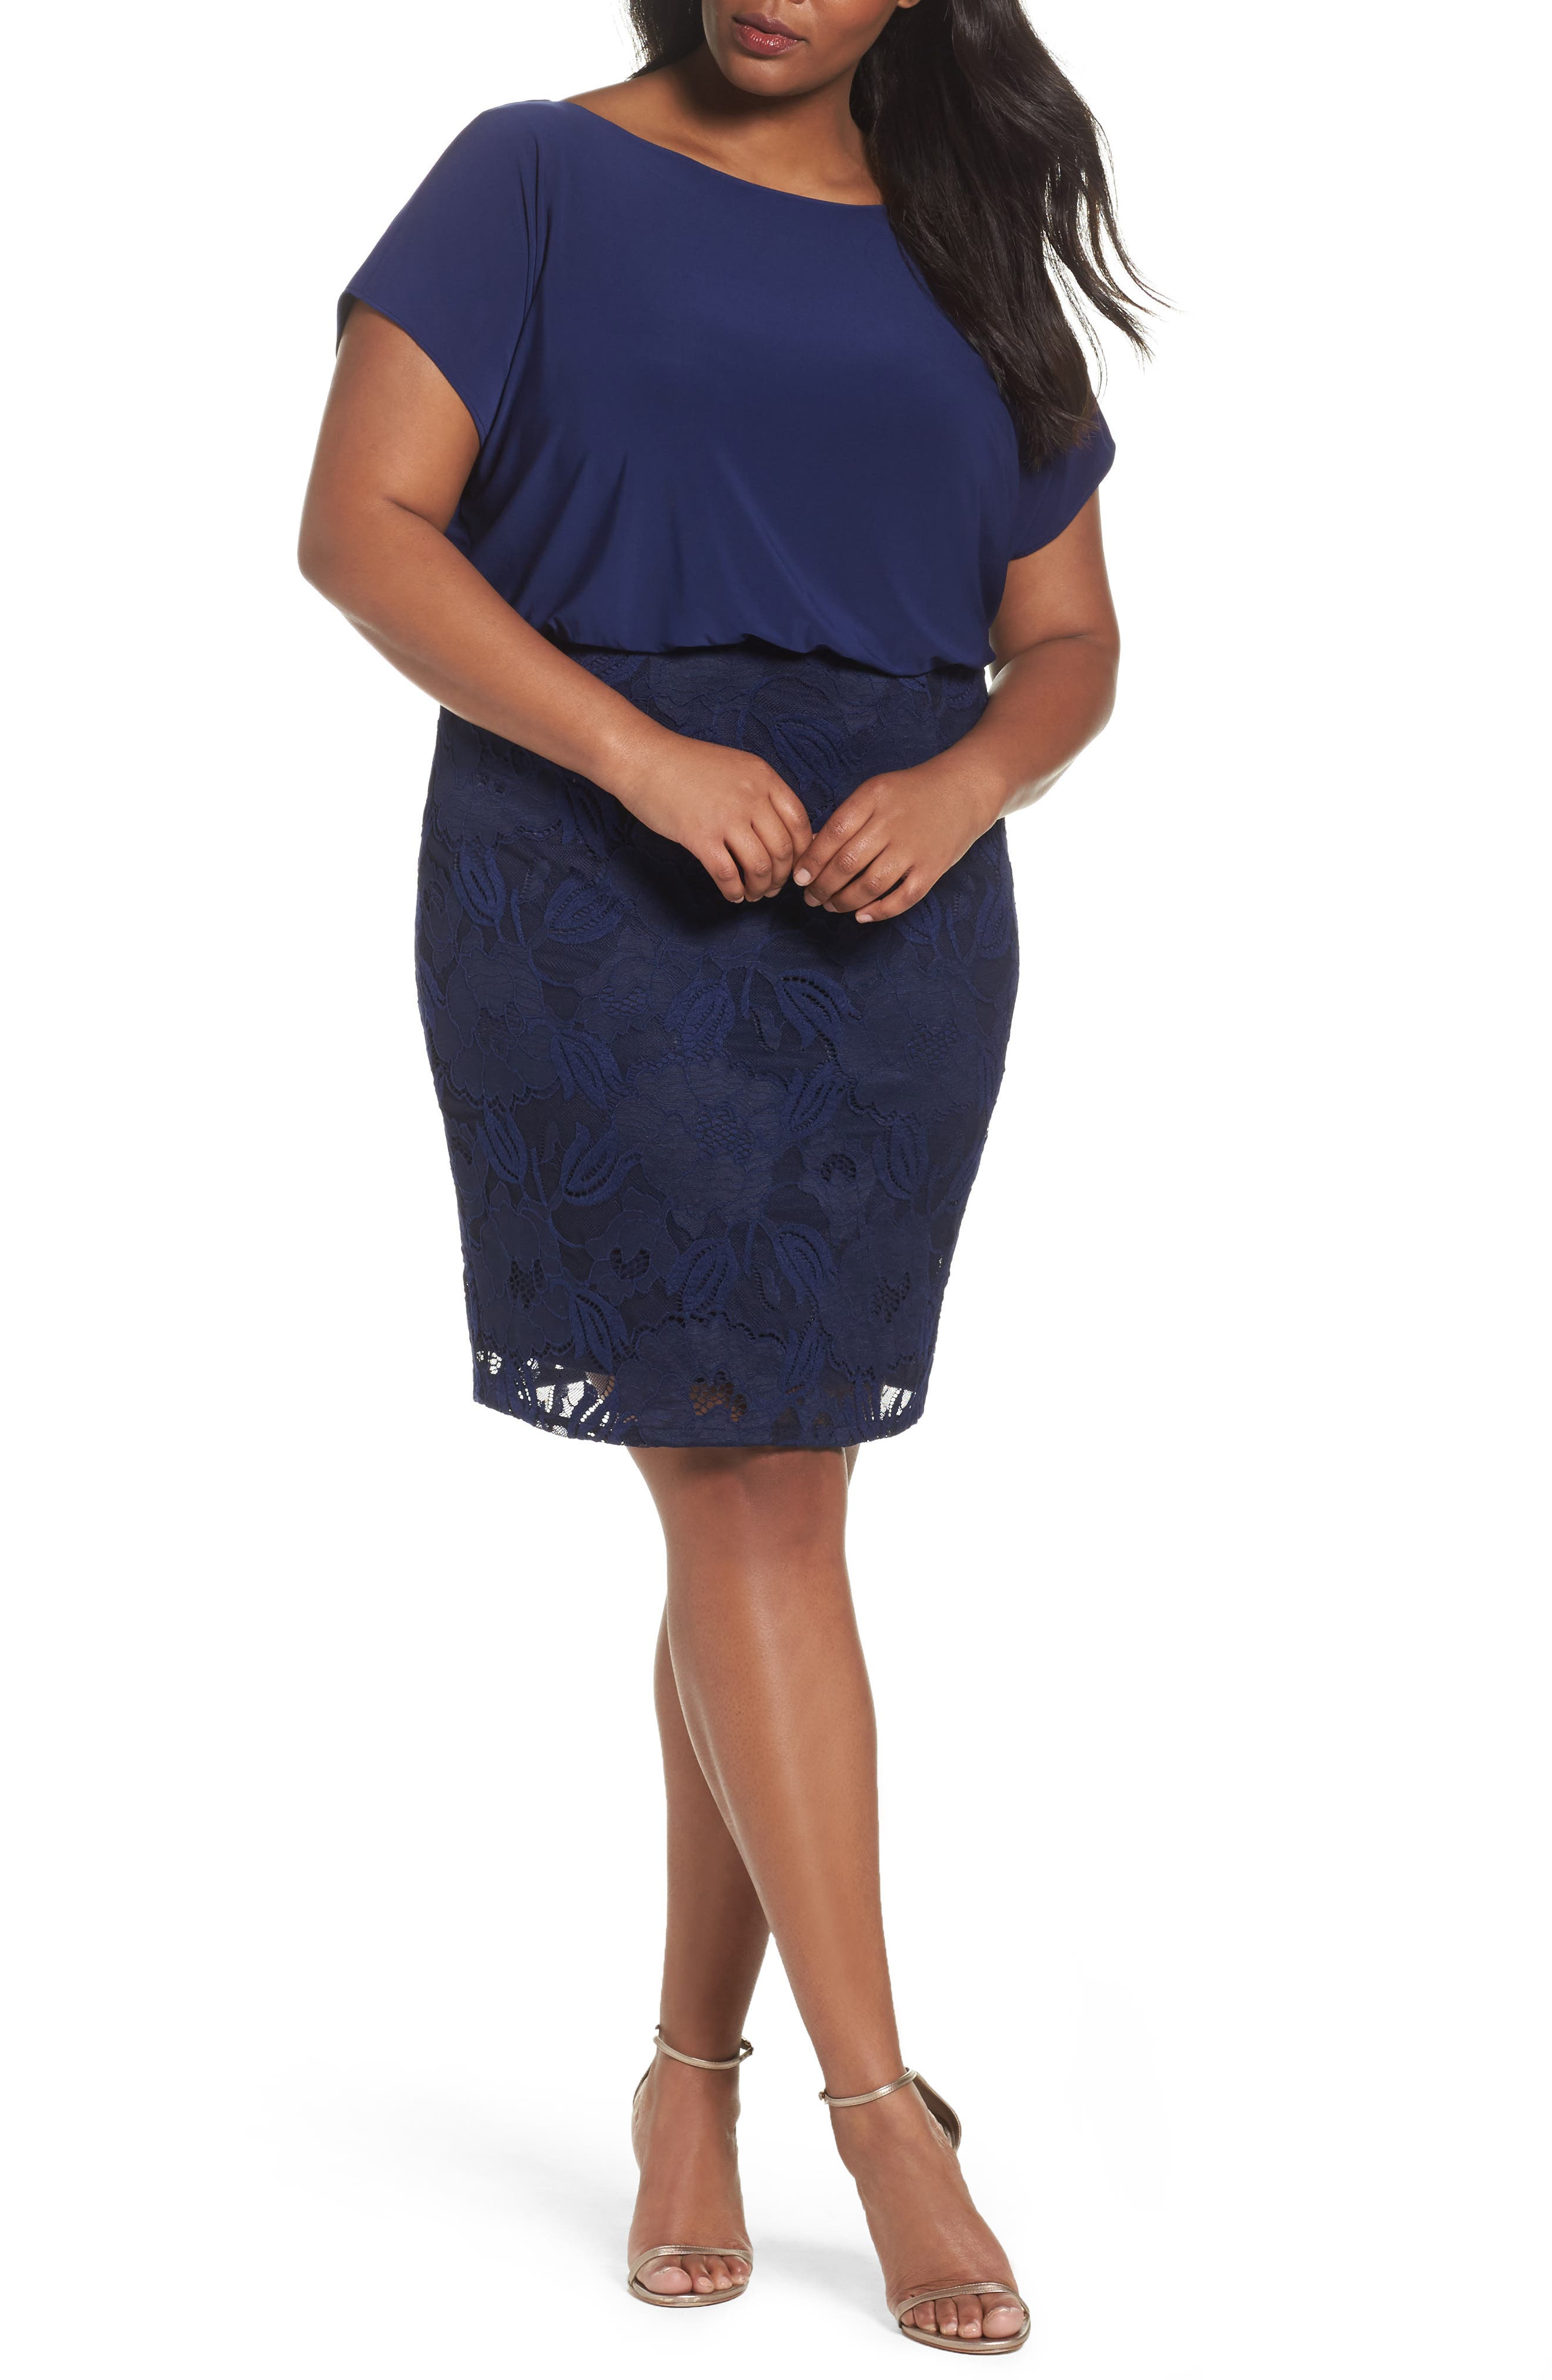 Adrianna Papell Mixed Media Blouson Dress (Plus Size)